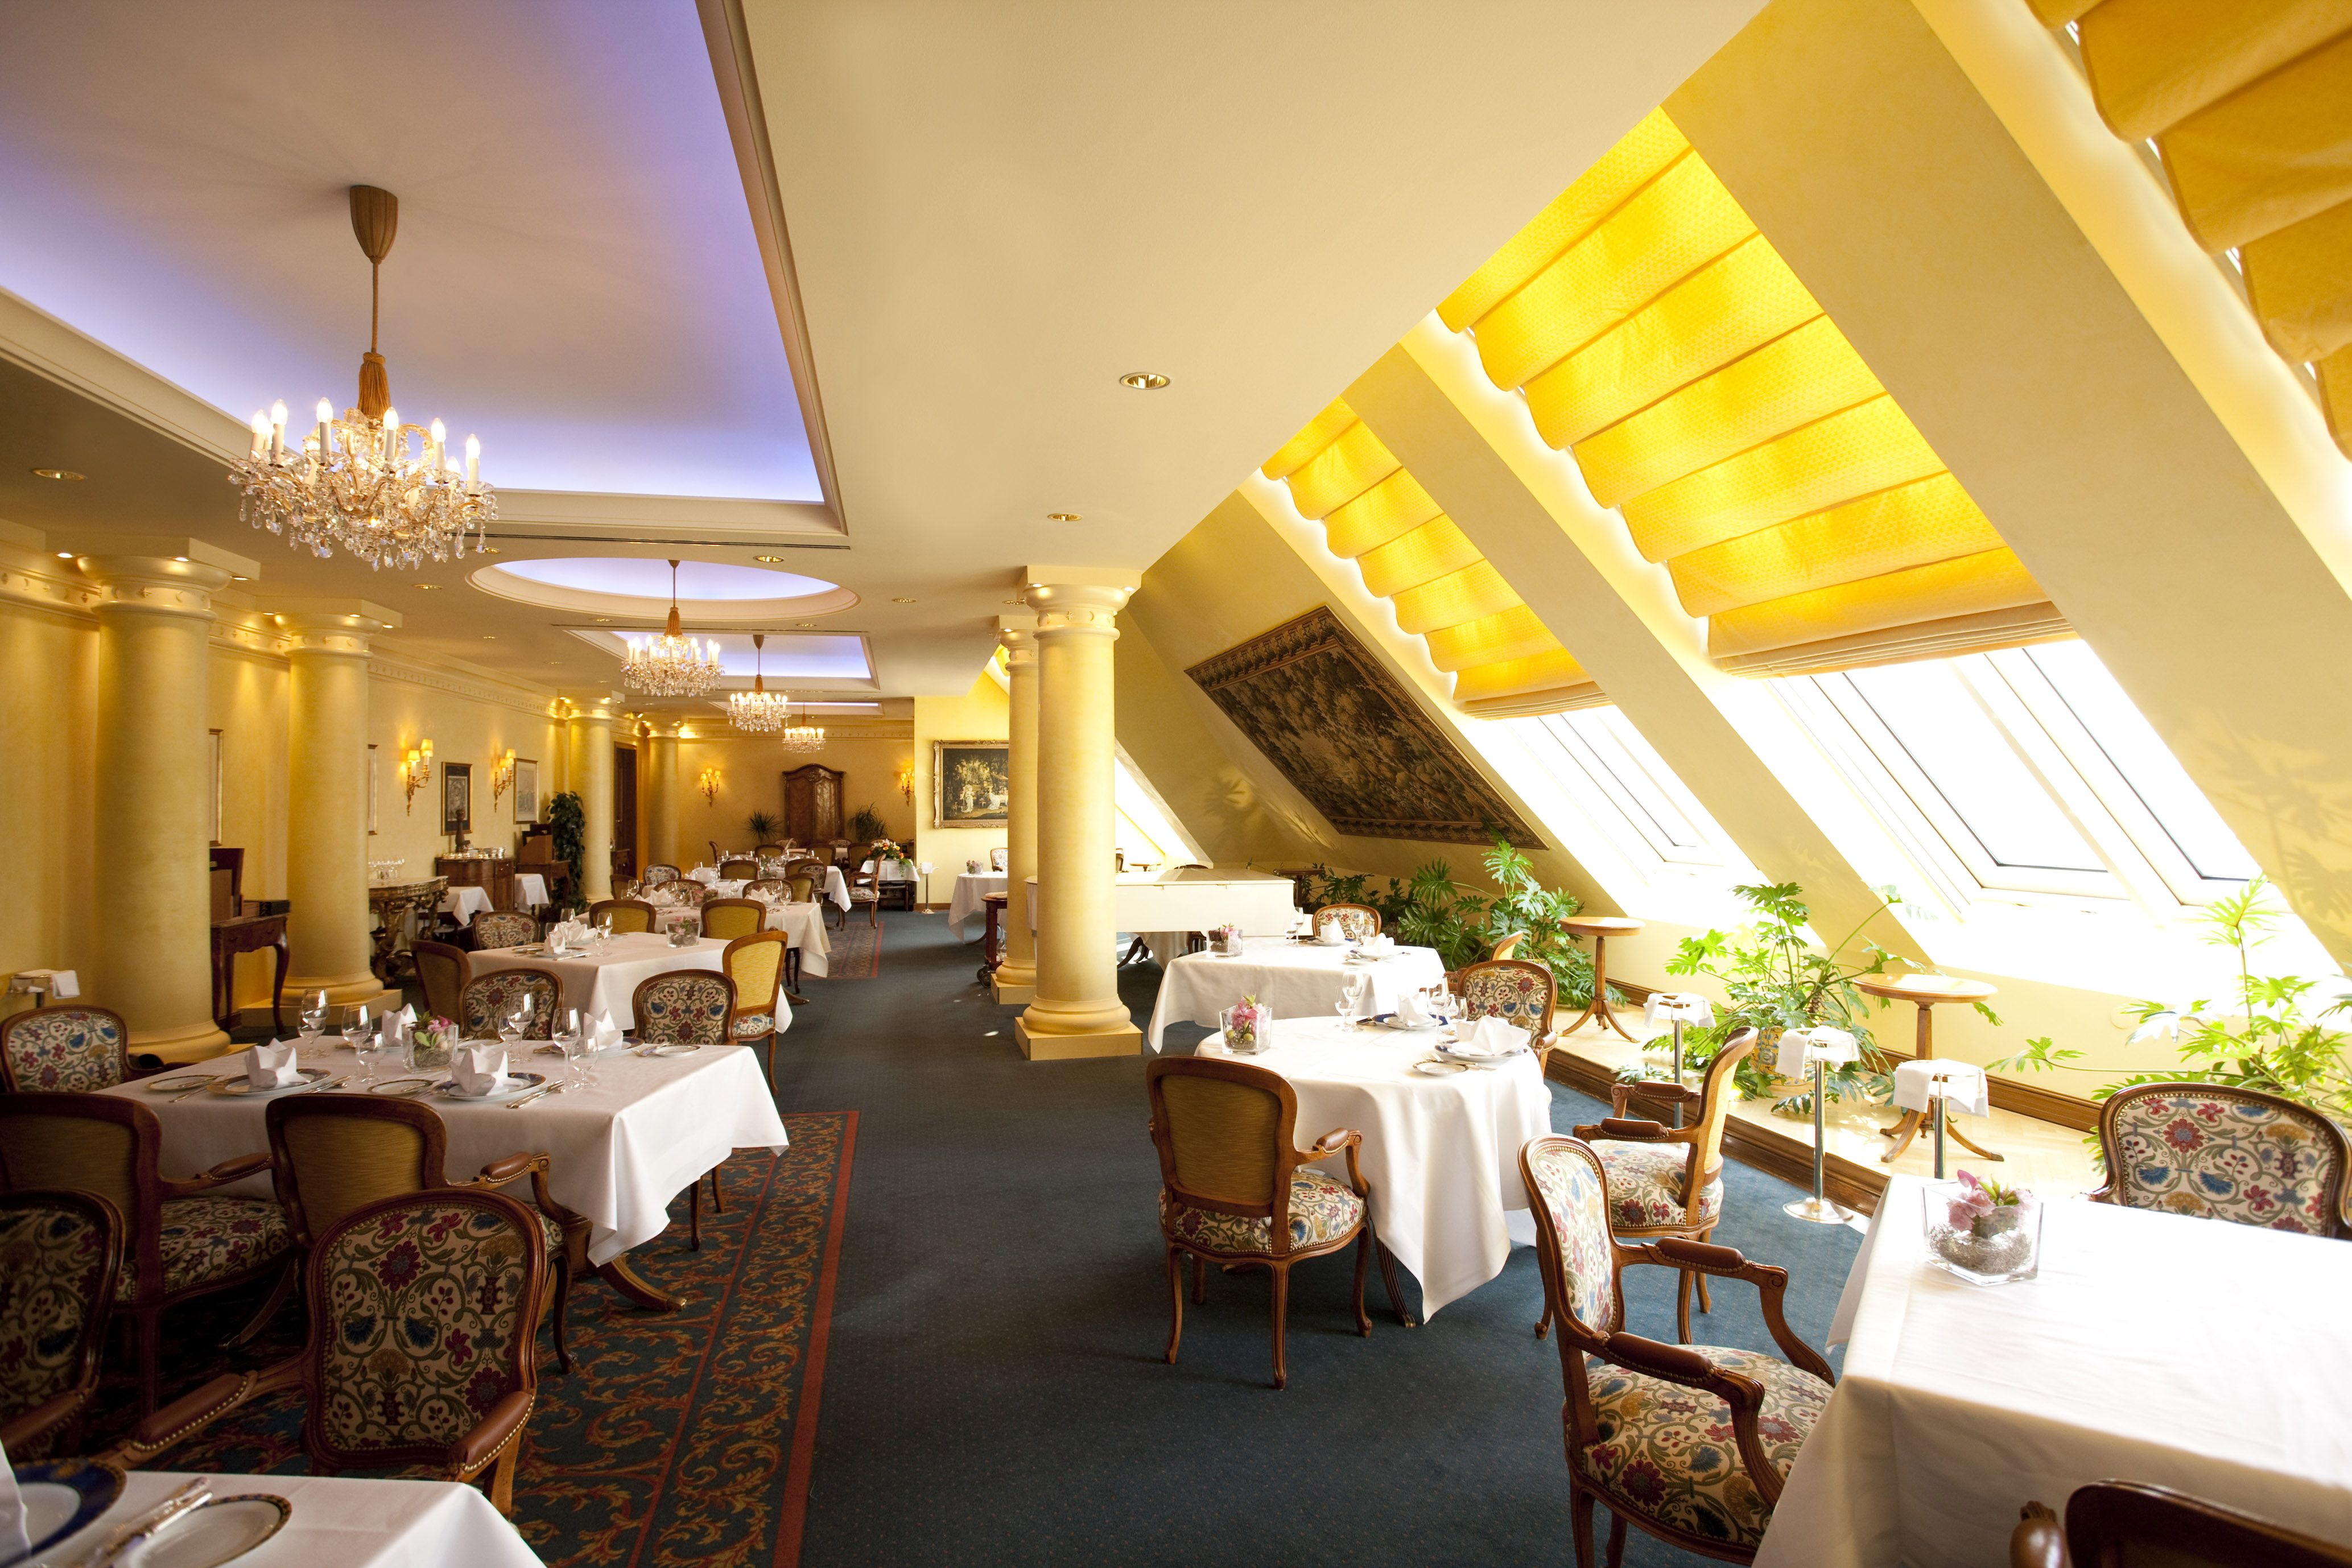 Meeting and event spaces at hilton austria hotels vienna and - Grand Hotel Wien Le Ciel Luxpitality Grandhotelwien Restaurant Dining Leciel